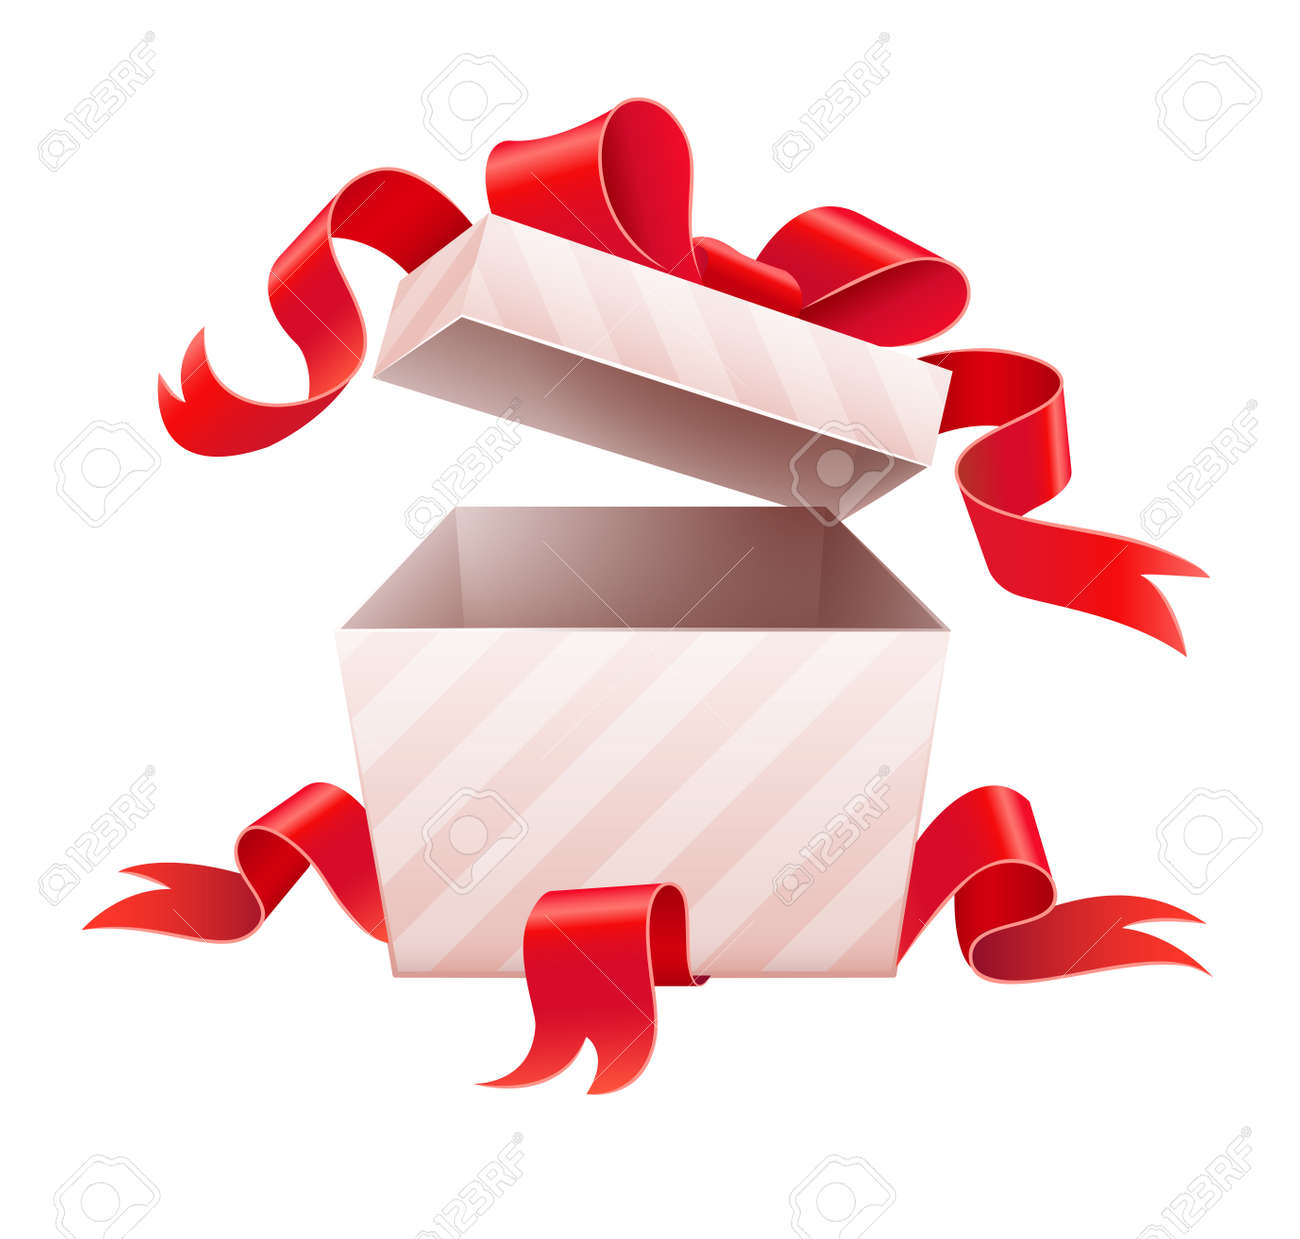 Open Box With Ribbon For Holiday Gift Vector Illustration Isolated Royalty Free Cliparts Vectors And Stock Illustration Image 33101641